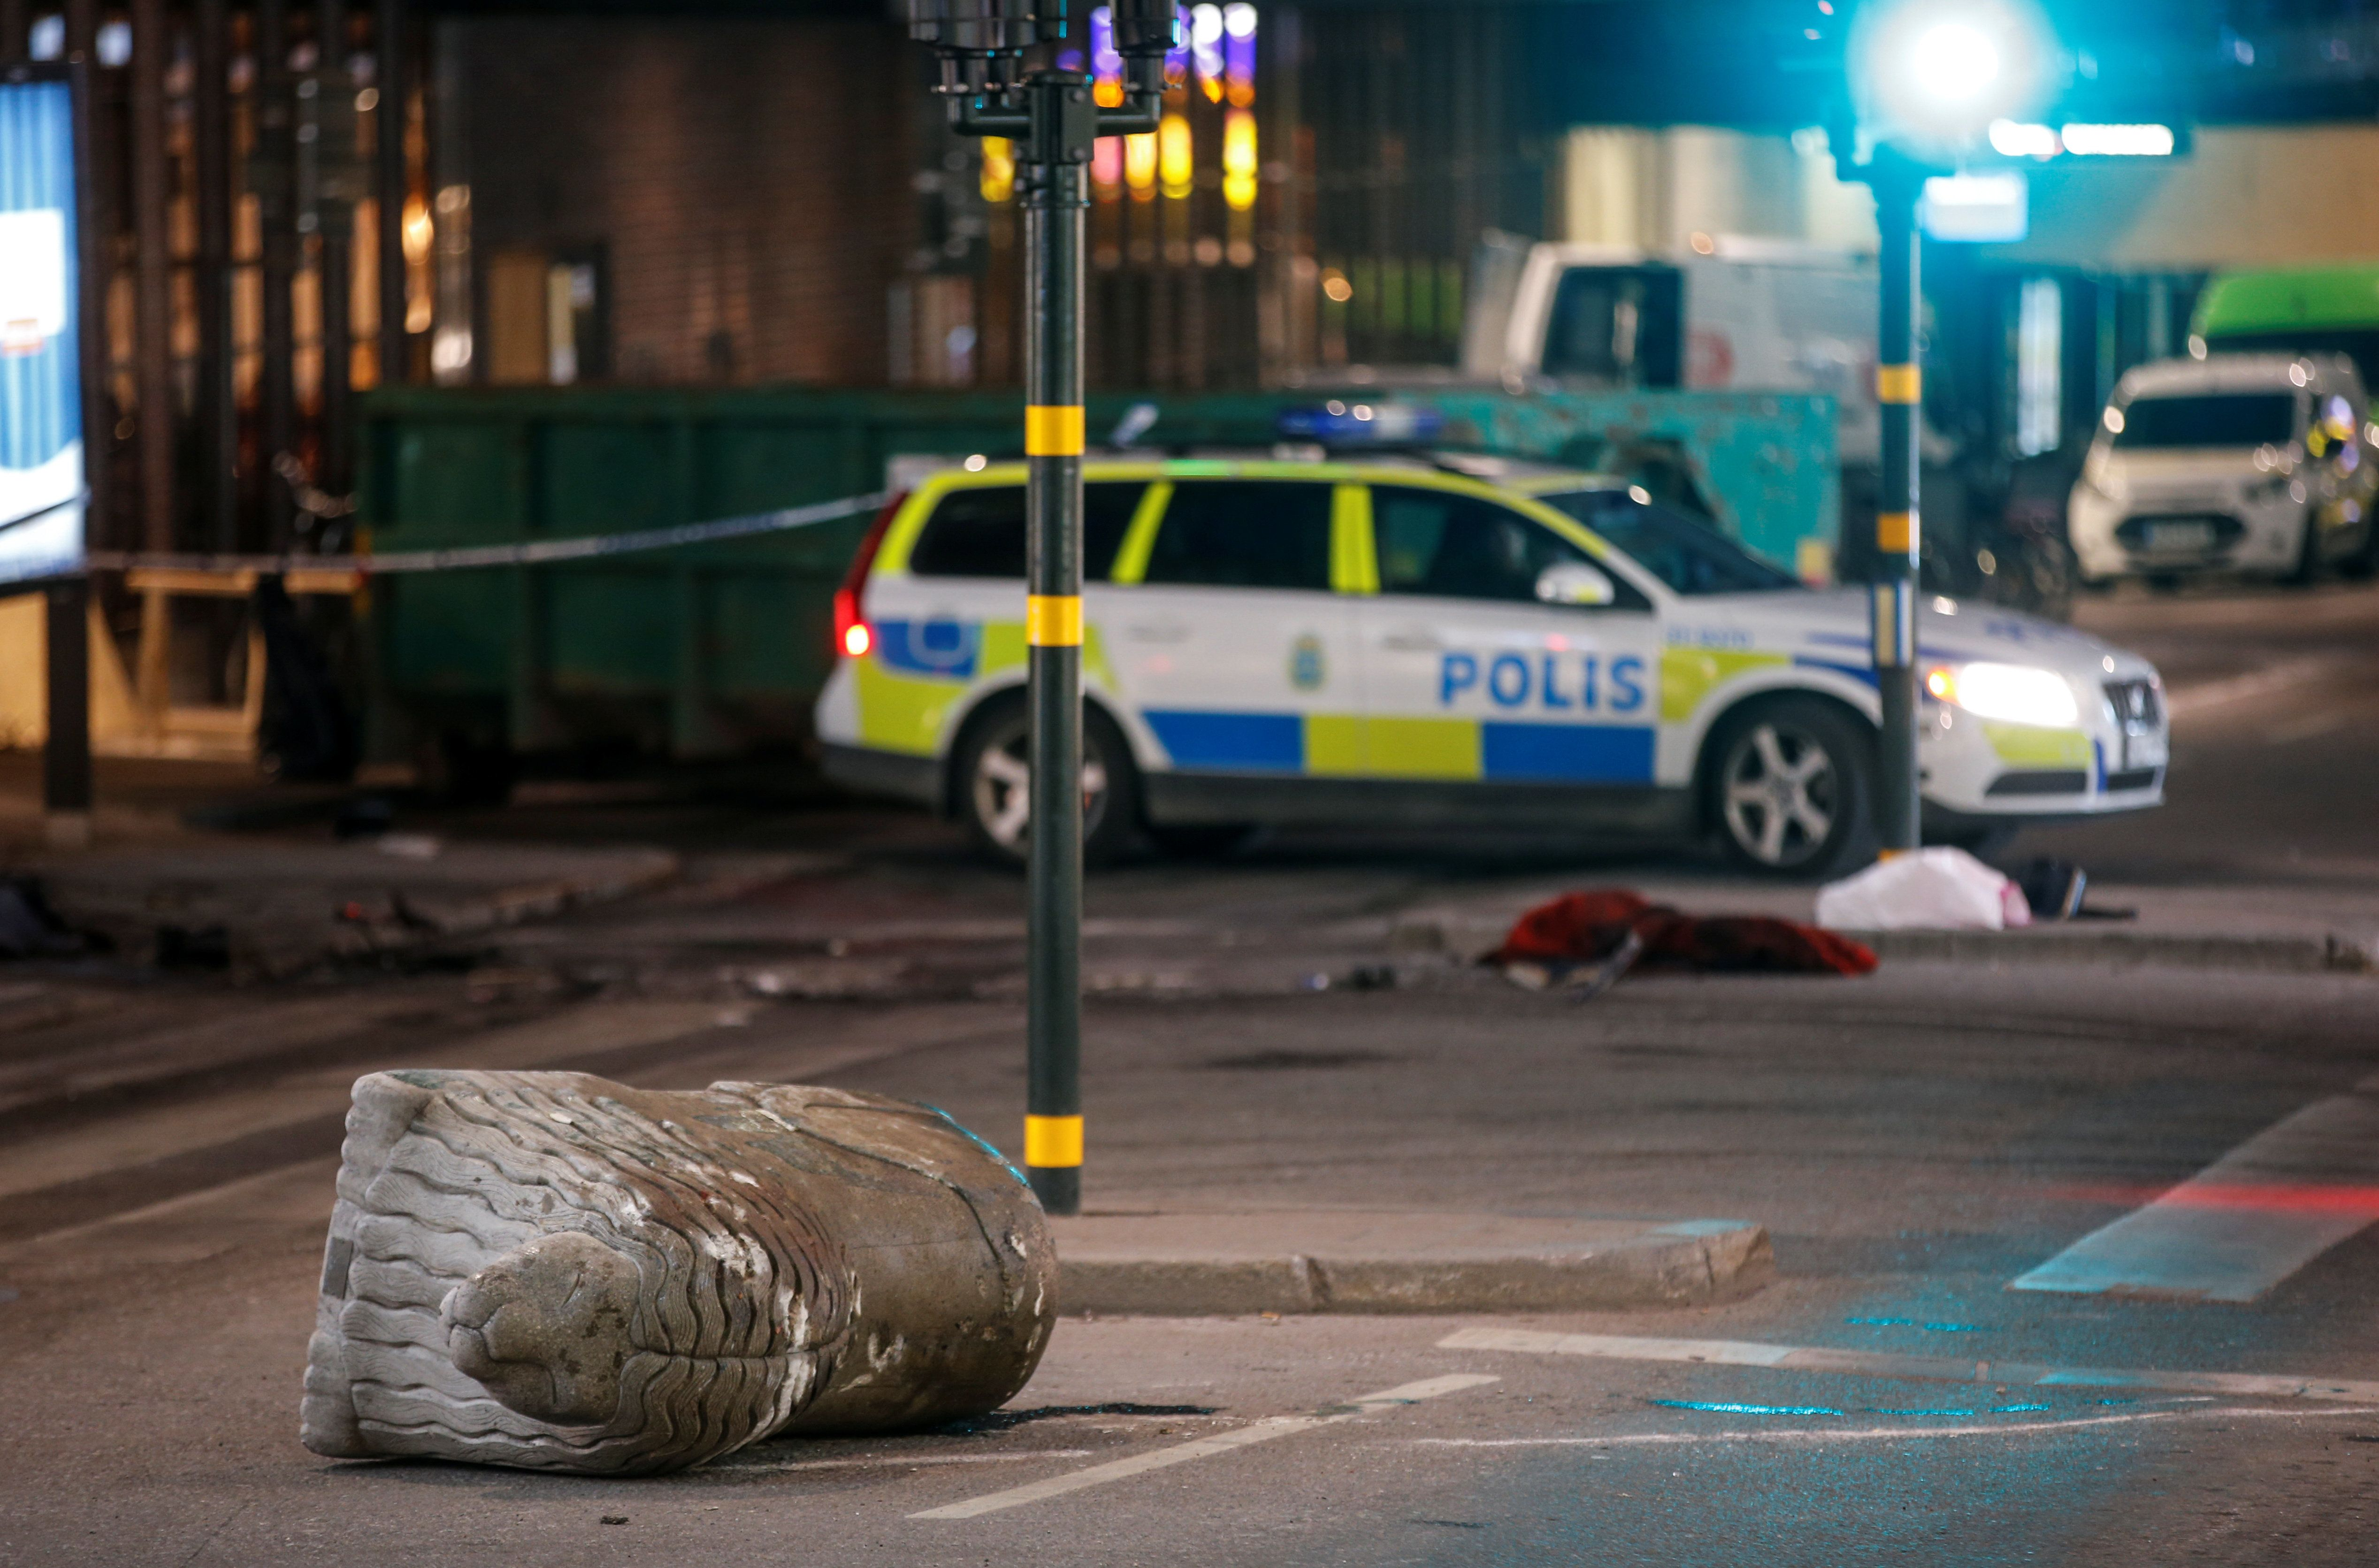 A turned over, 'Stockholmslejon', a concrete traffic stopper, is seen outside the roped off area near the department store Ahlens after a suspected terror attack on the Drottninggatan Street in central Stockholm, Sweden, April 8, 2017. Fredrik Persson/TT News Agency/via Reuters??ATTENTION EDITORS - THIS IMAGE WAS PROVIDED BY A THIRD PARTY. FOR EDITORIAL USE ONLY. NOT FOR SALE FOR MARKETING OR ADVERTISING CAMPAIGNS. THIS PICTURE IS DISTRIBUTED EXACTLY AS RECEIVED BY REUTERS, AS A SERVICE TO CLIENTS. SWEDEN OUT. NO COMMERCIAL OR EDITORIAL SALES IN SWEDEN. NO COMMERCIAL SALES.